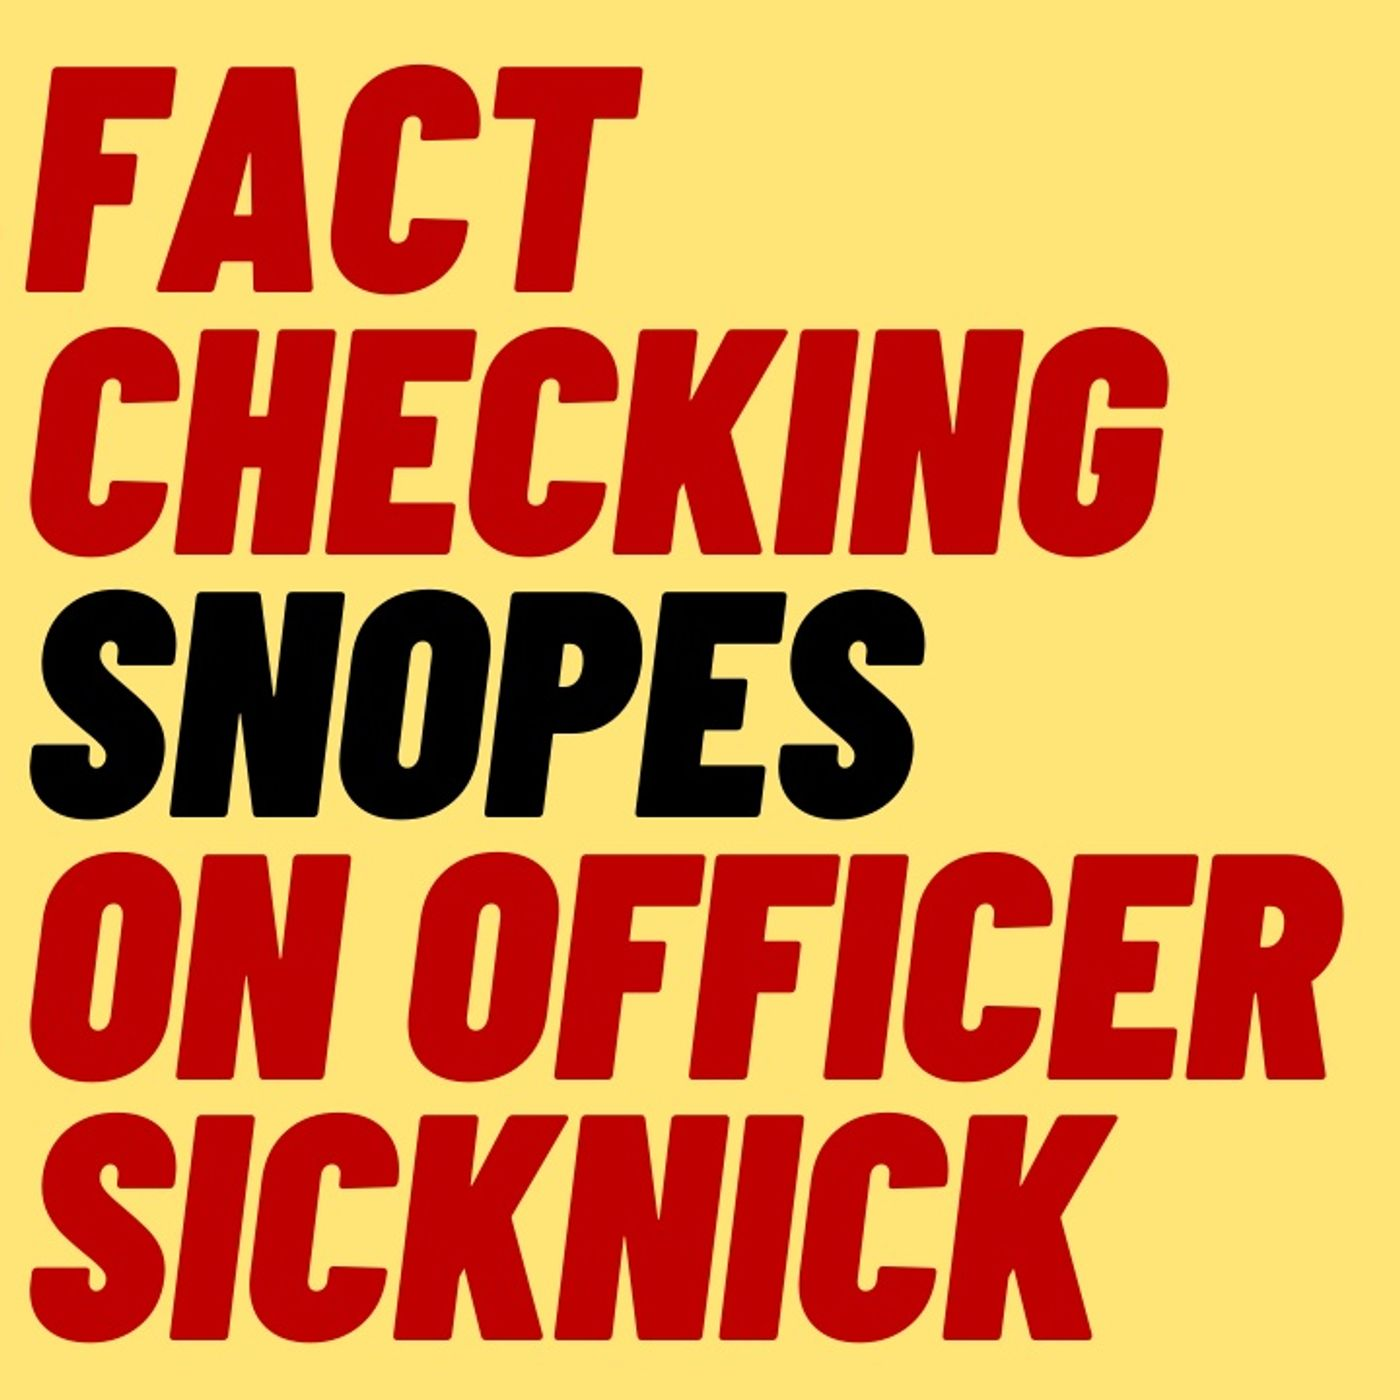 FACT CHECKING SNOPES ON CAPITOL RIOT CLAIM